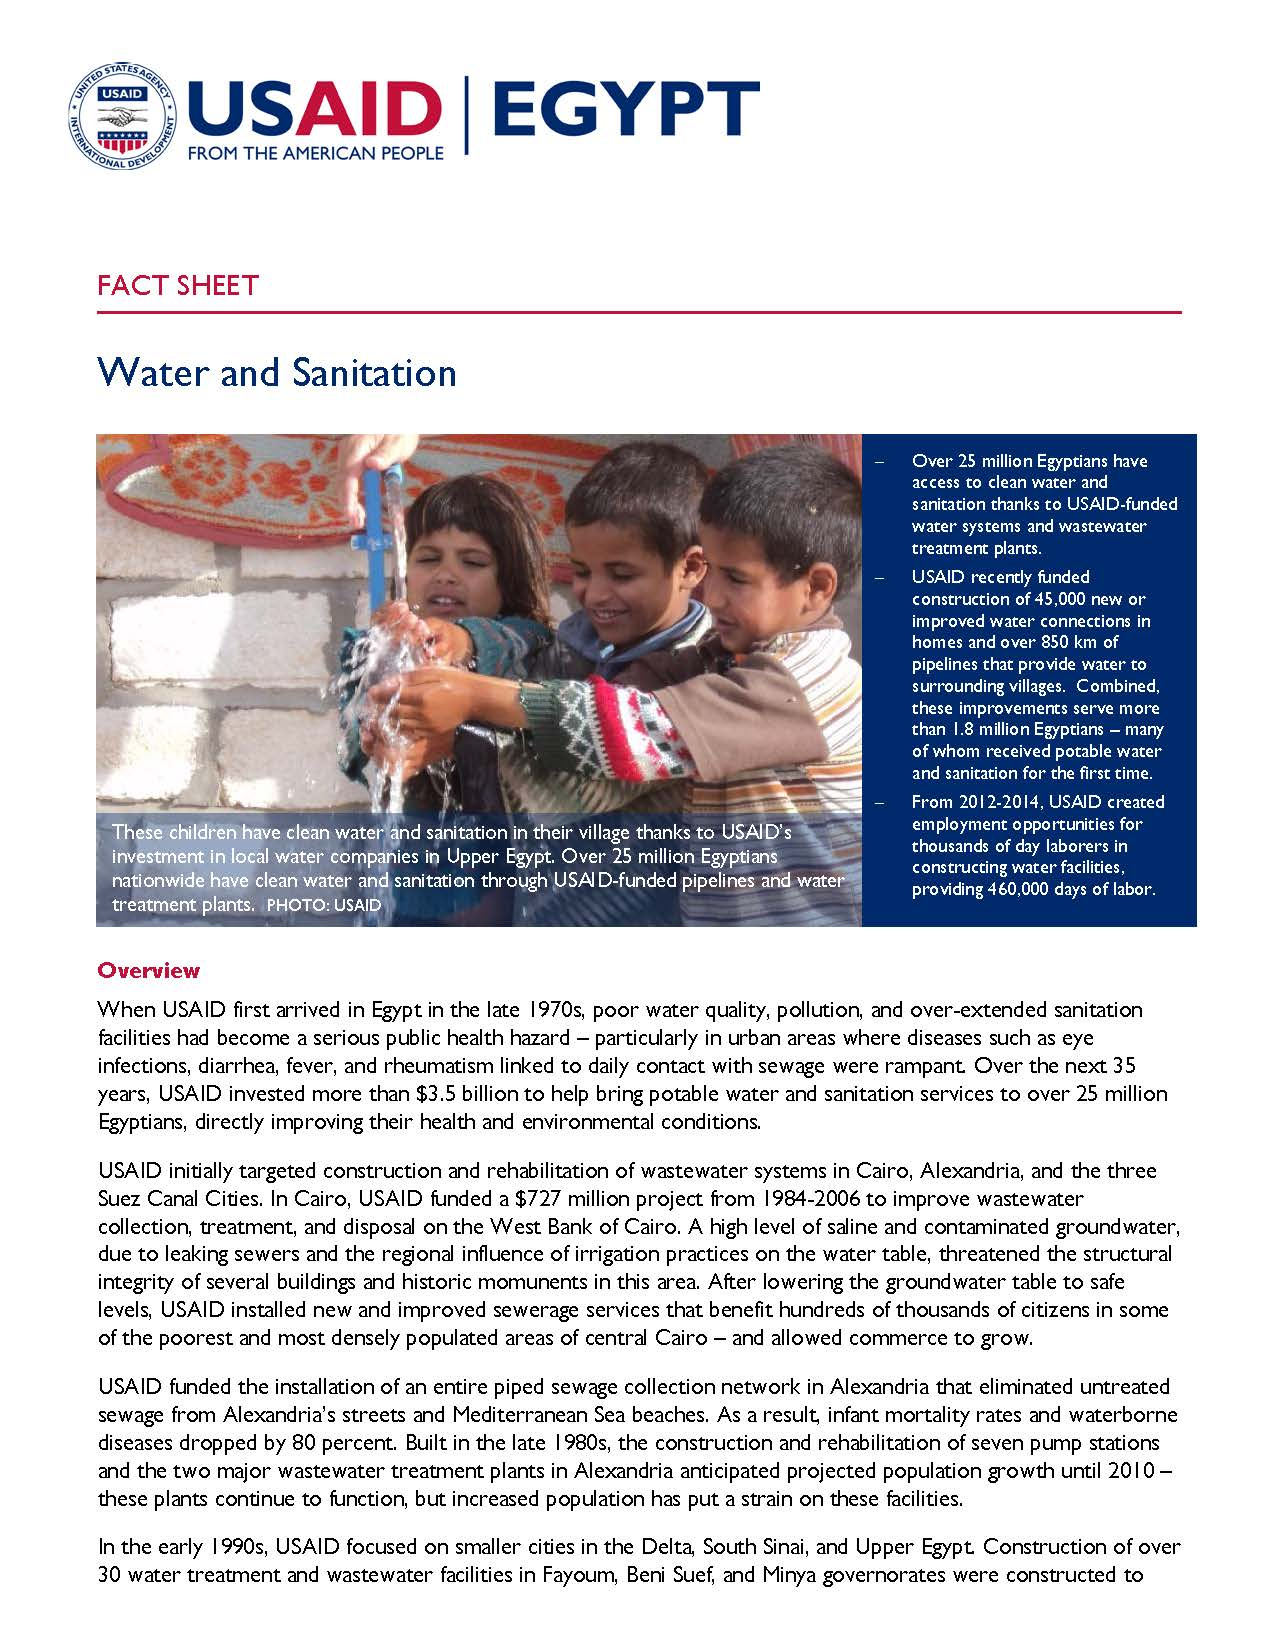 USAID/Egypt Water and Sanitation Fact Sheet